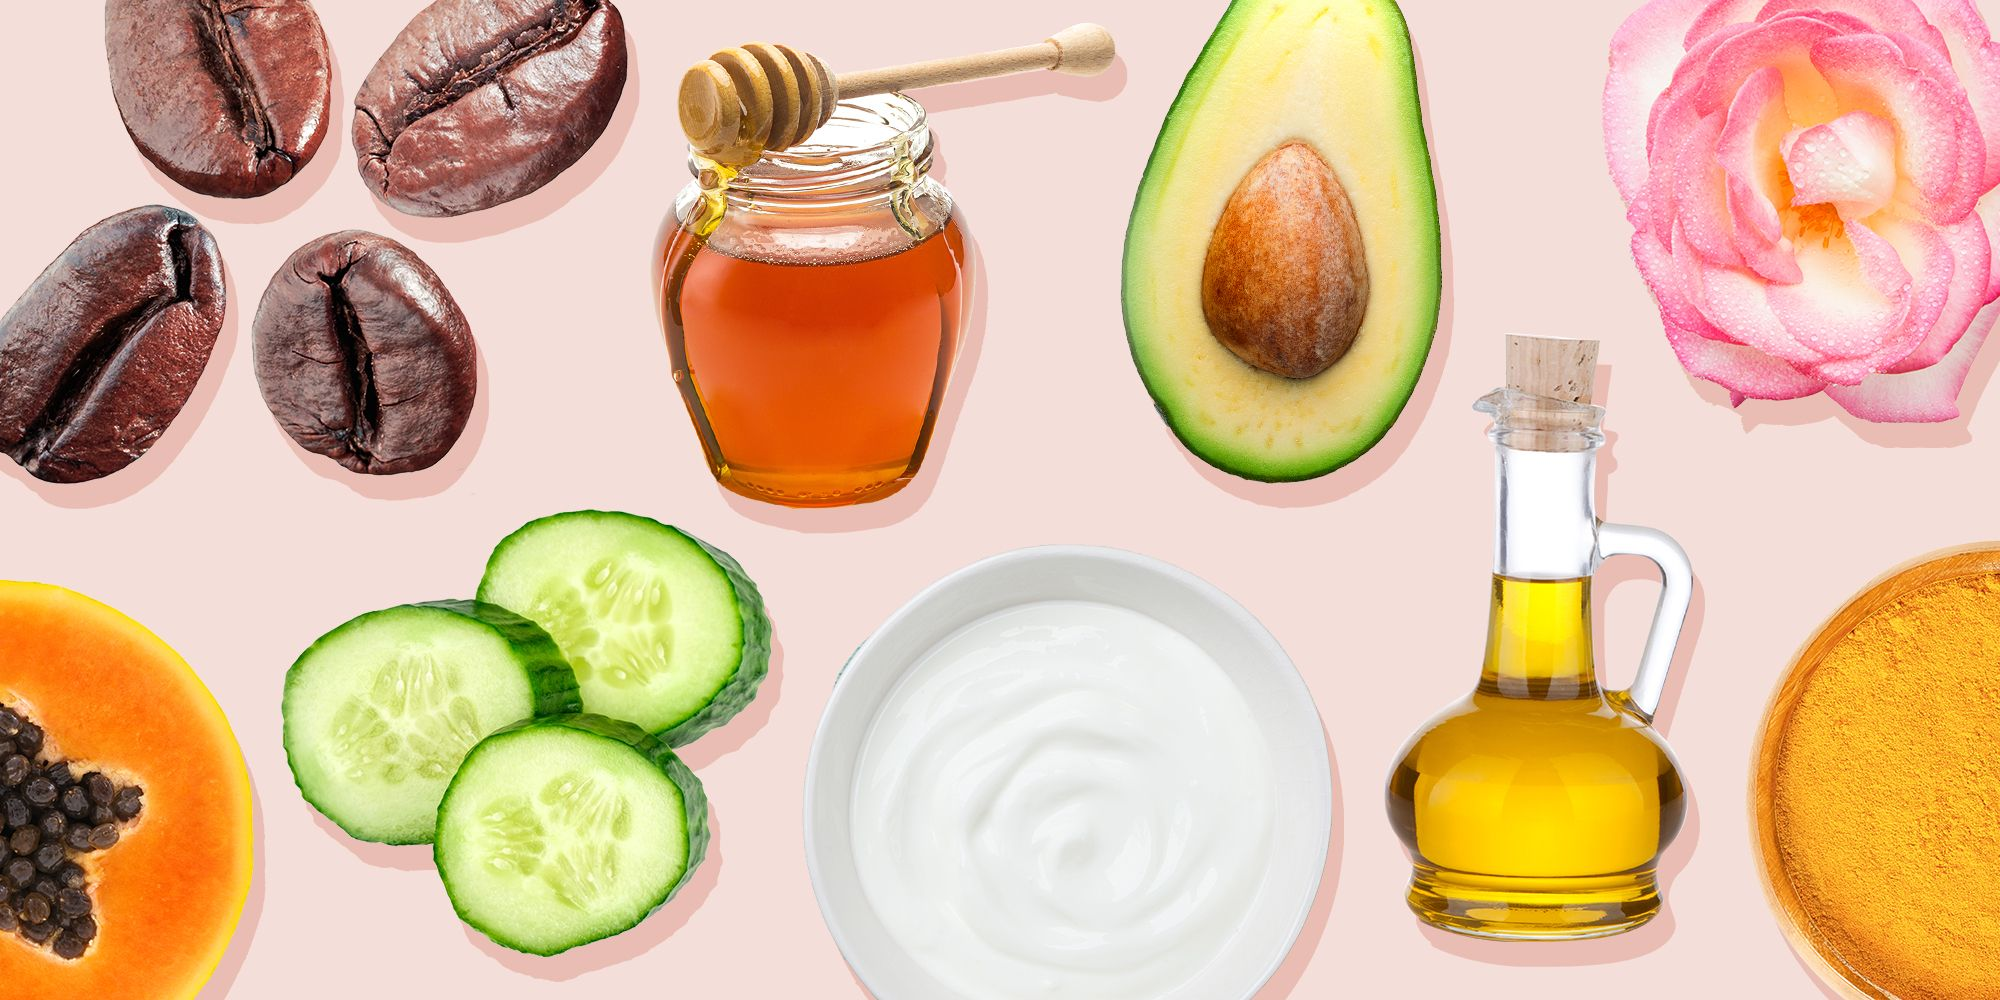 Best Diy Face Mask Recipes For Glowing Skin Homemade Face Mask Recipes